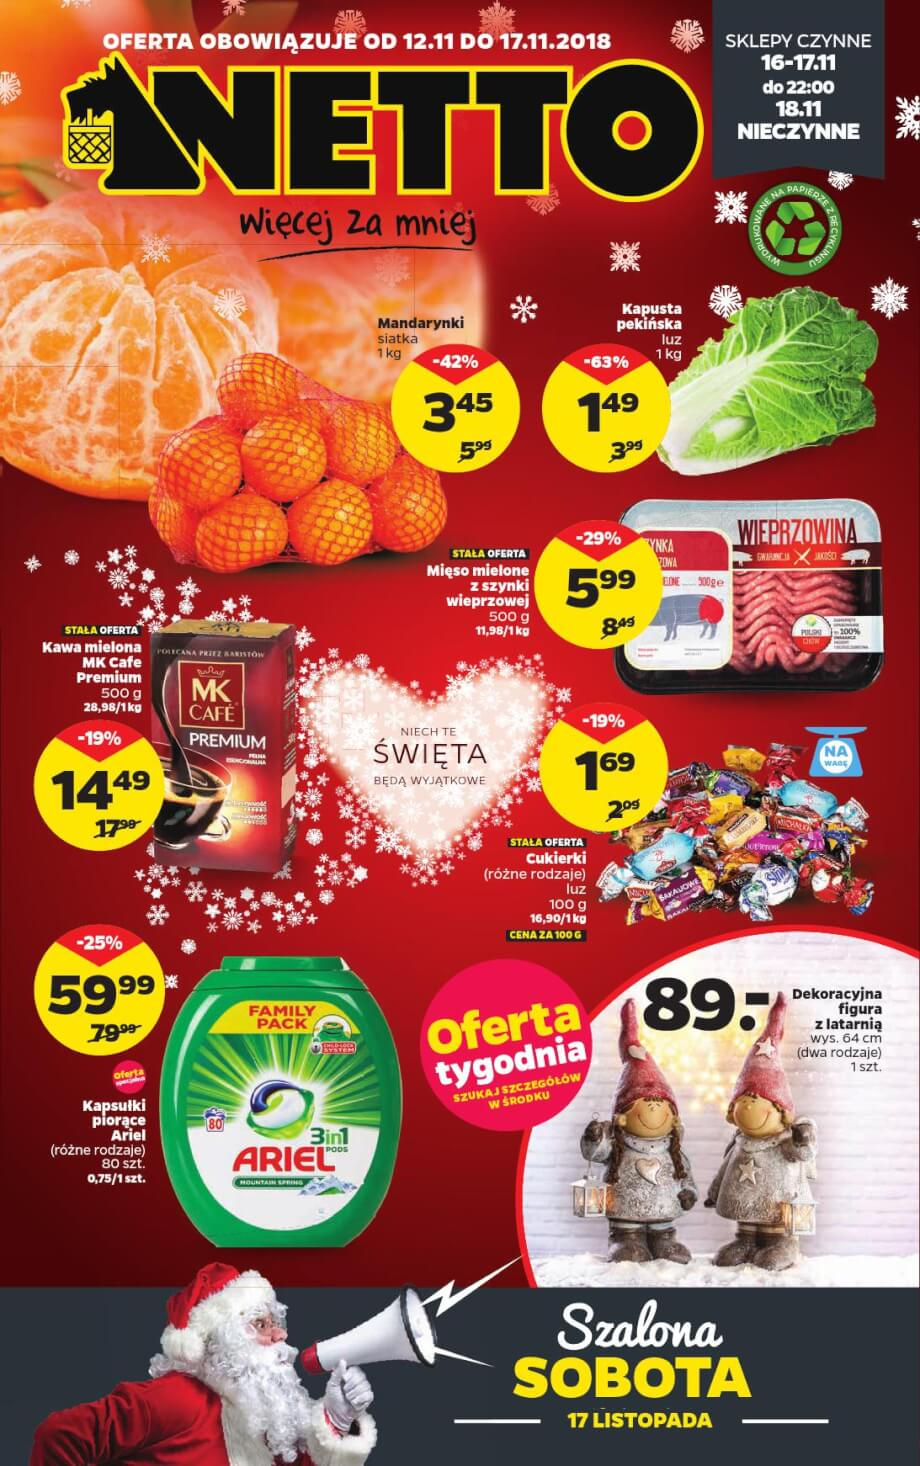 Netto, gazetka do 17.11.2018